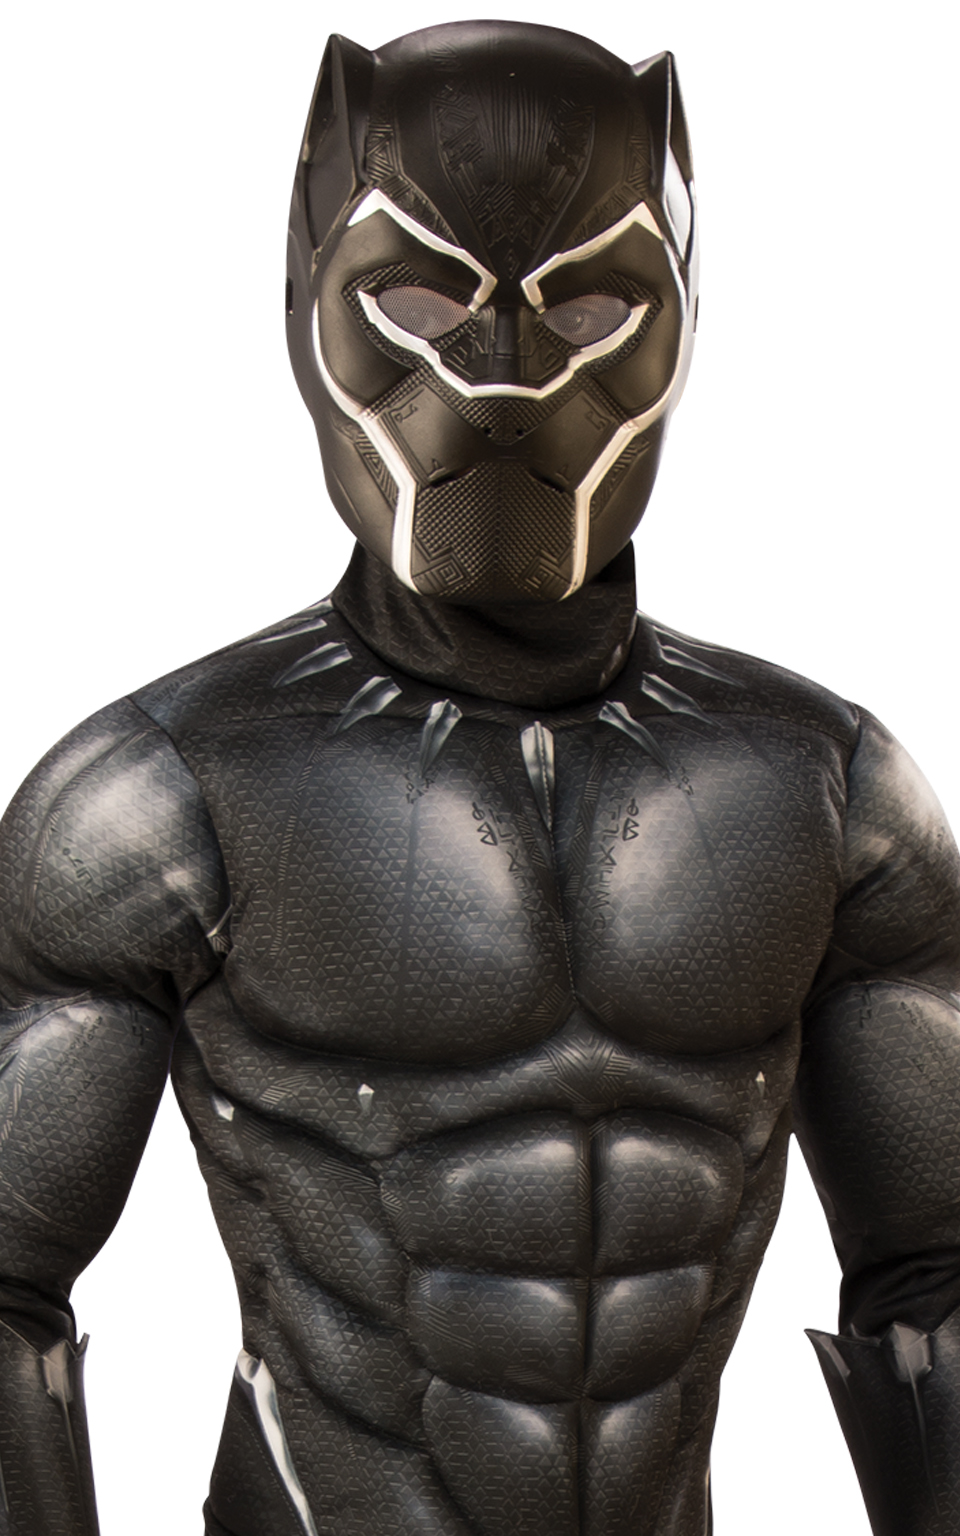 Black Panther Deluxe Costume Boys Marvel Superhero Movie Comic Kids Fancy Dress